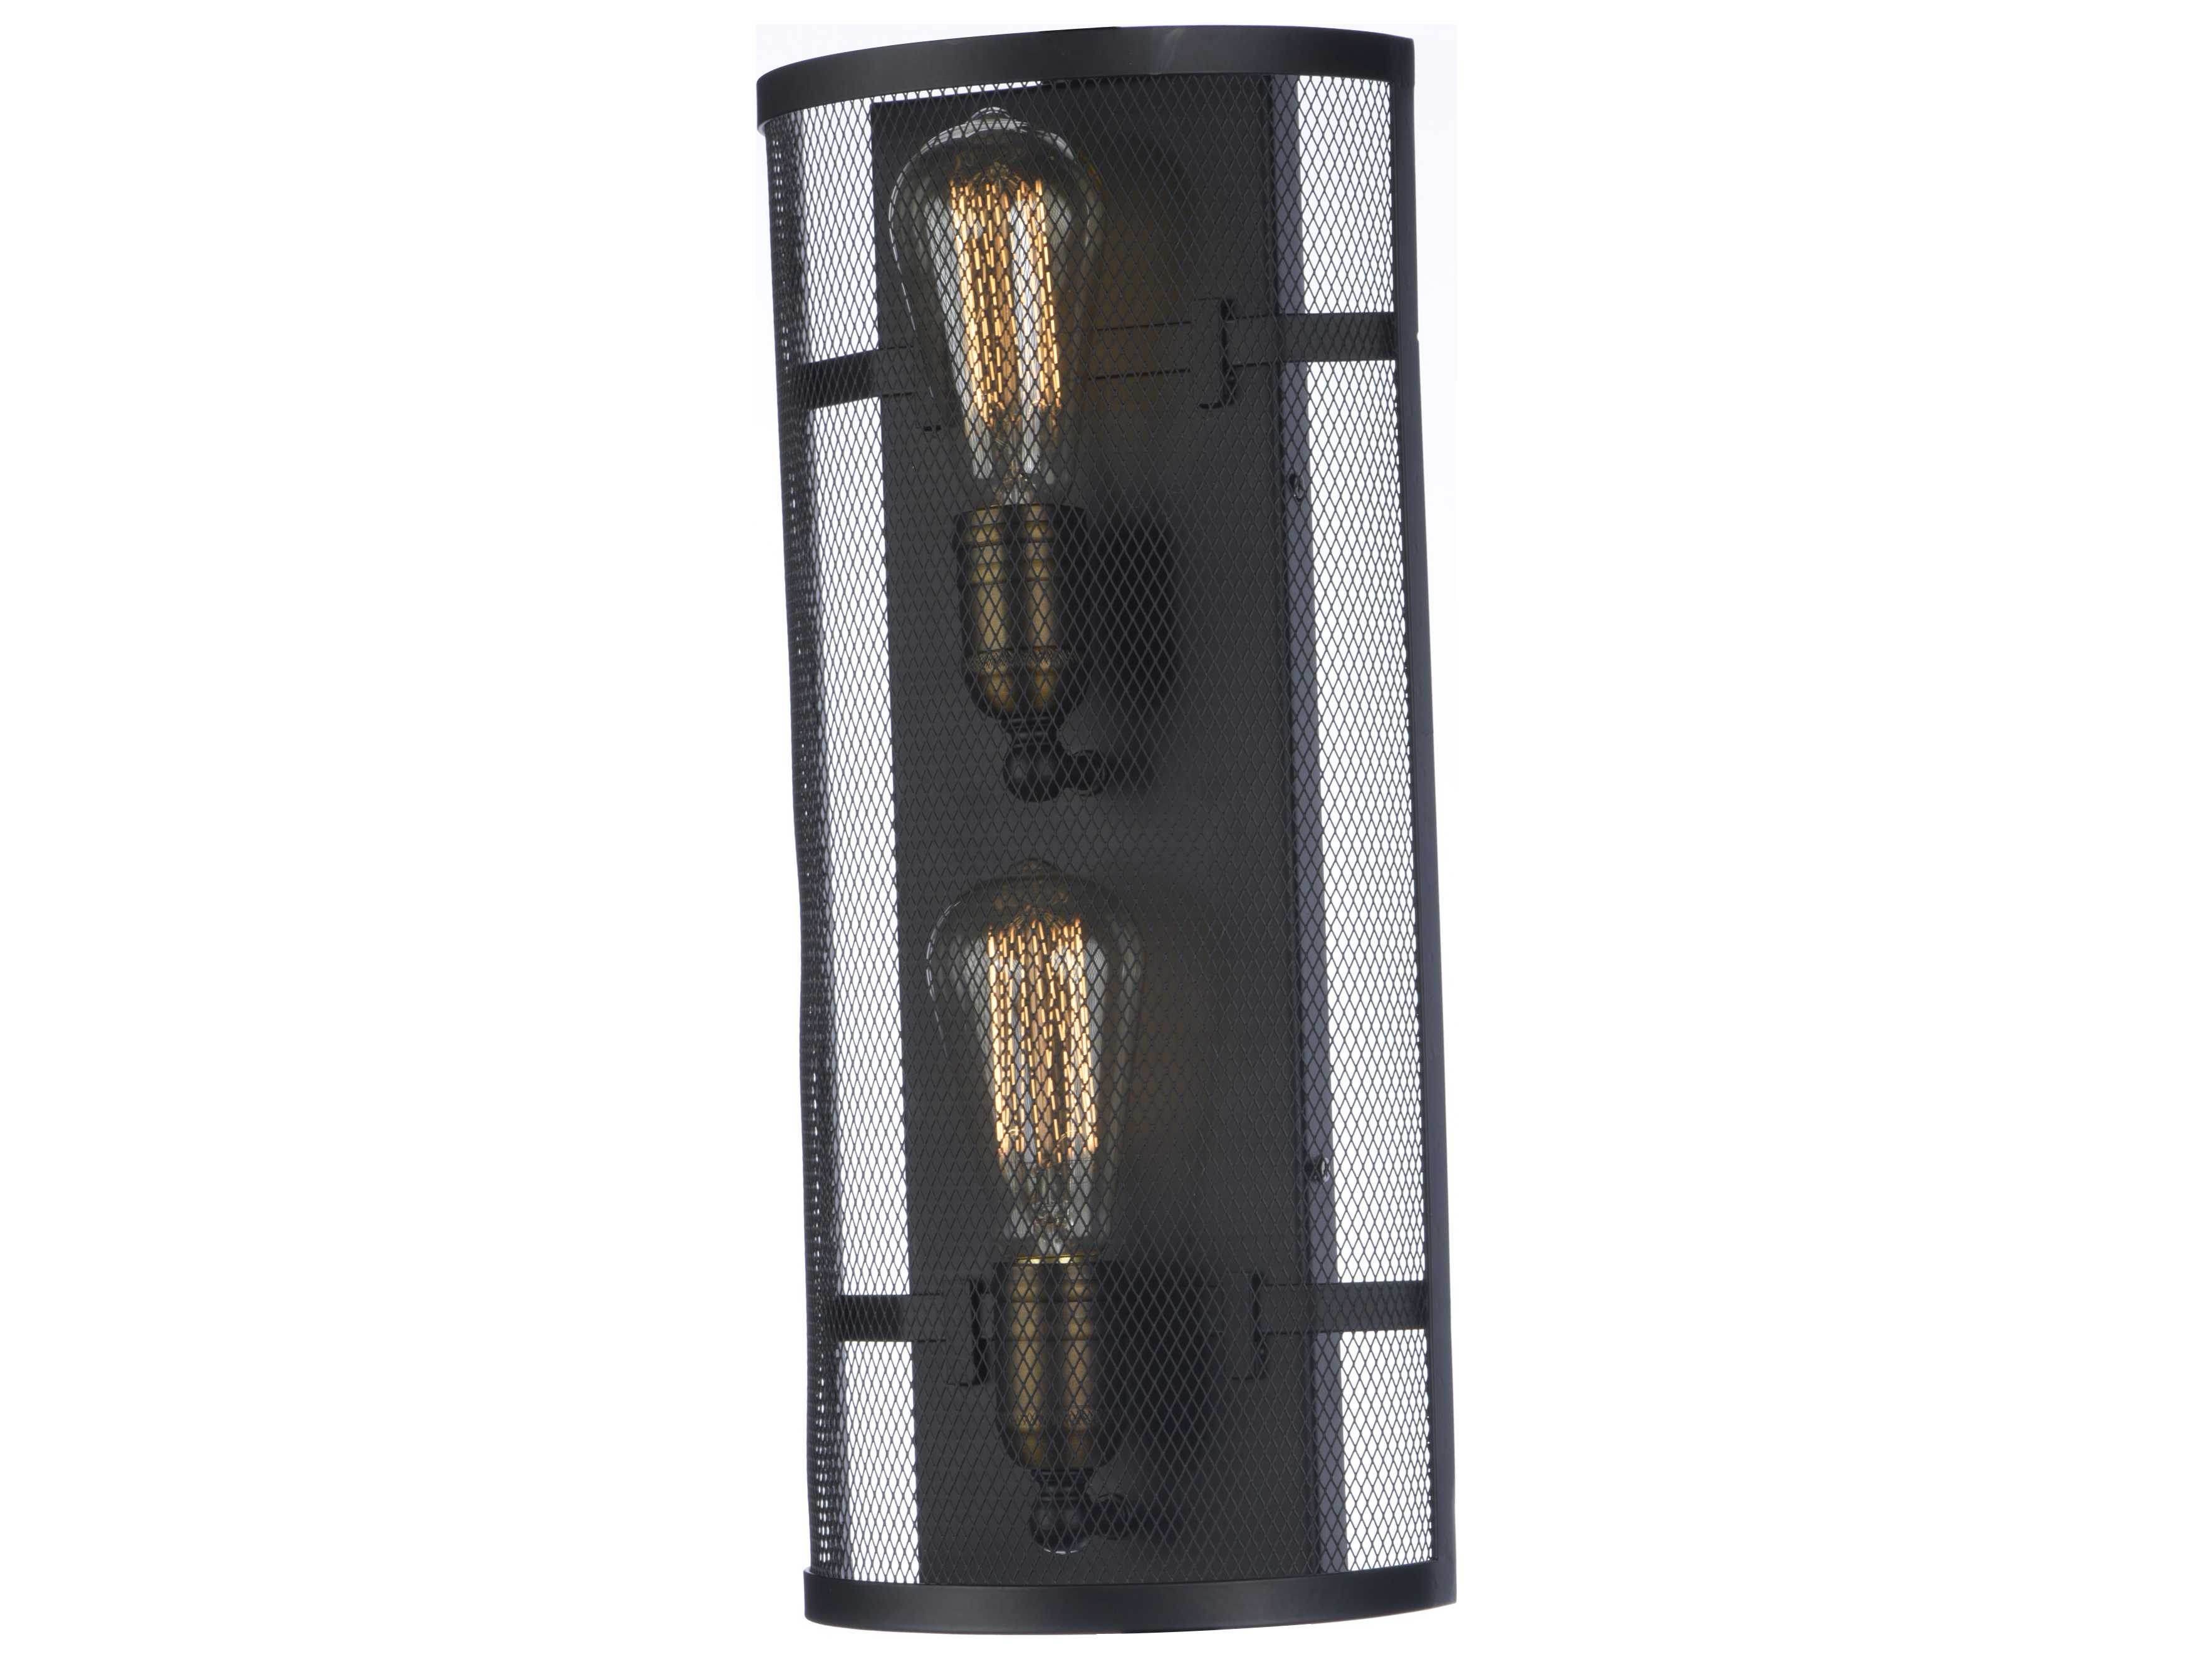 Wall Sconces Without Lights : Maxim Lighting Palladium Black & Natural Aged Brass Two-Light Wall Sconce without Bulb ...